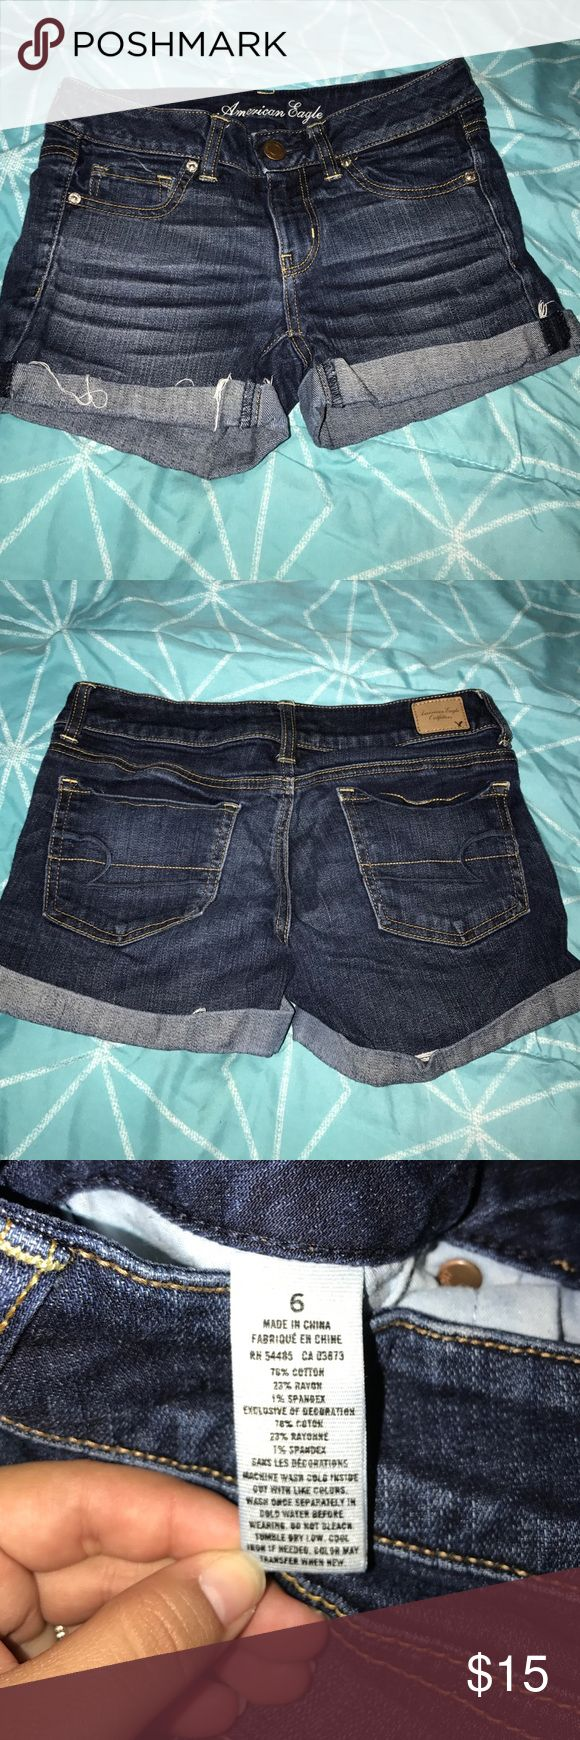 American Eagle Outfitters Shorts Dark blue jean shorts, brand new condition! American Eagle Outfitters Shorts Jean Shorts